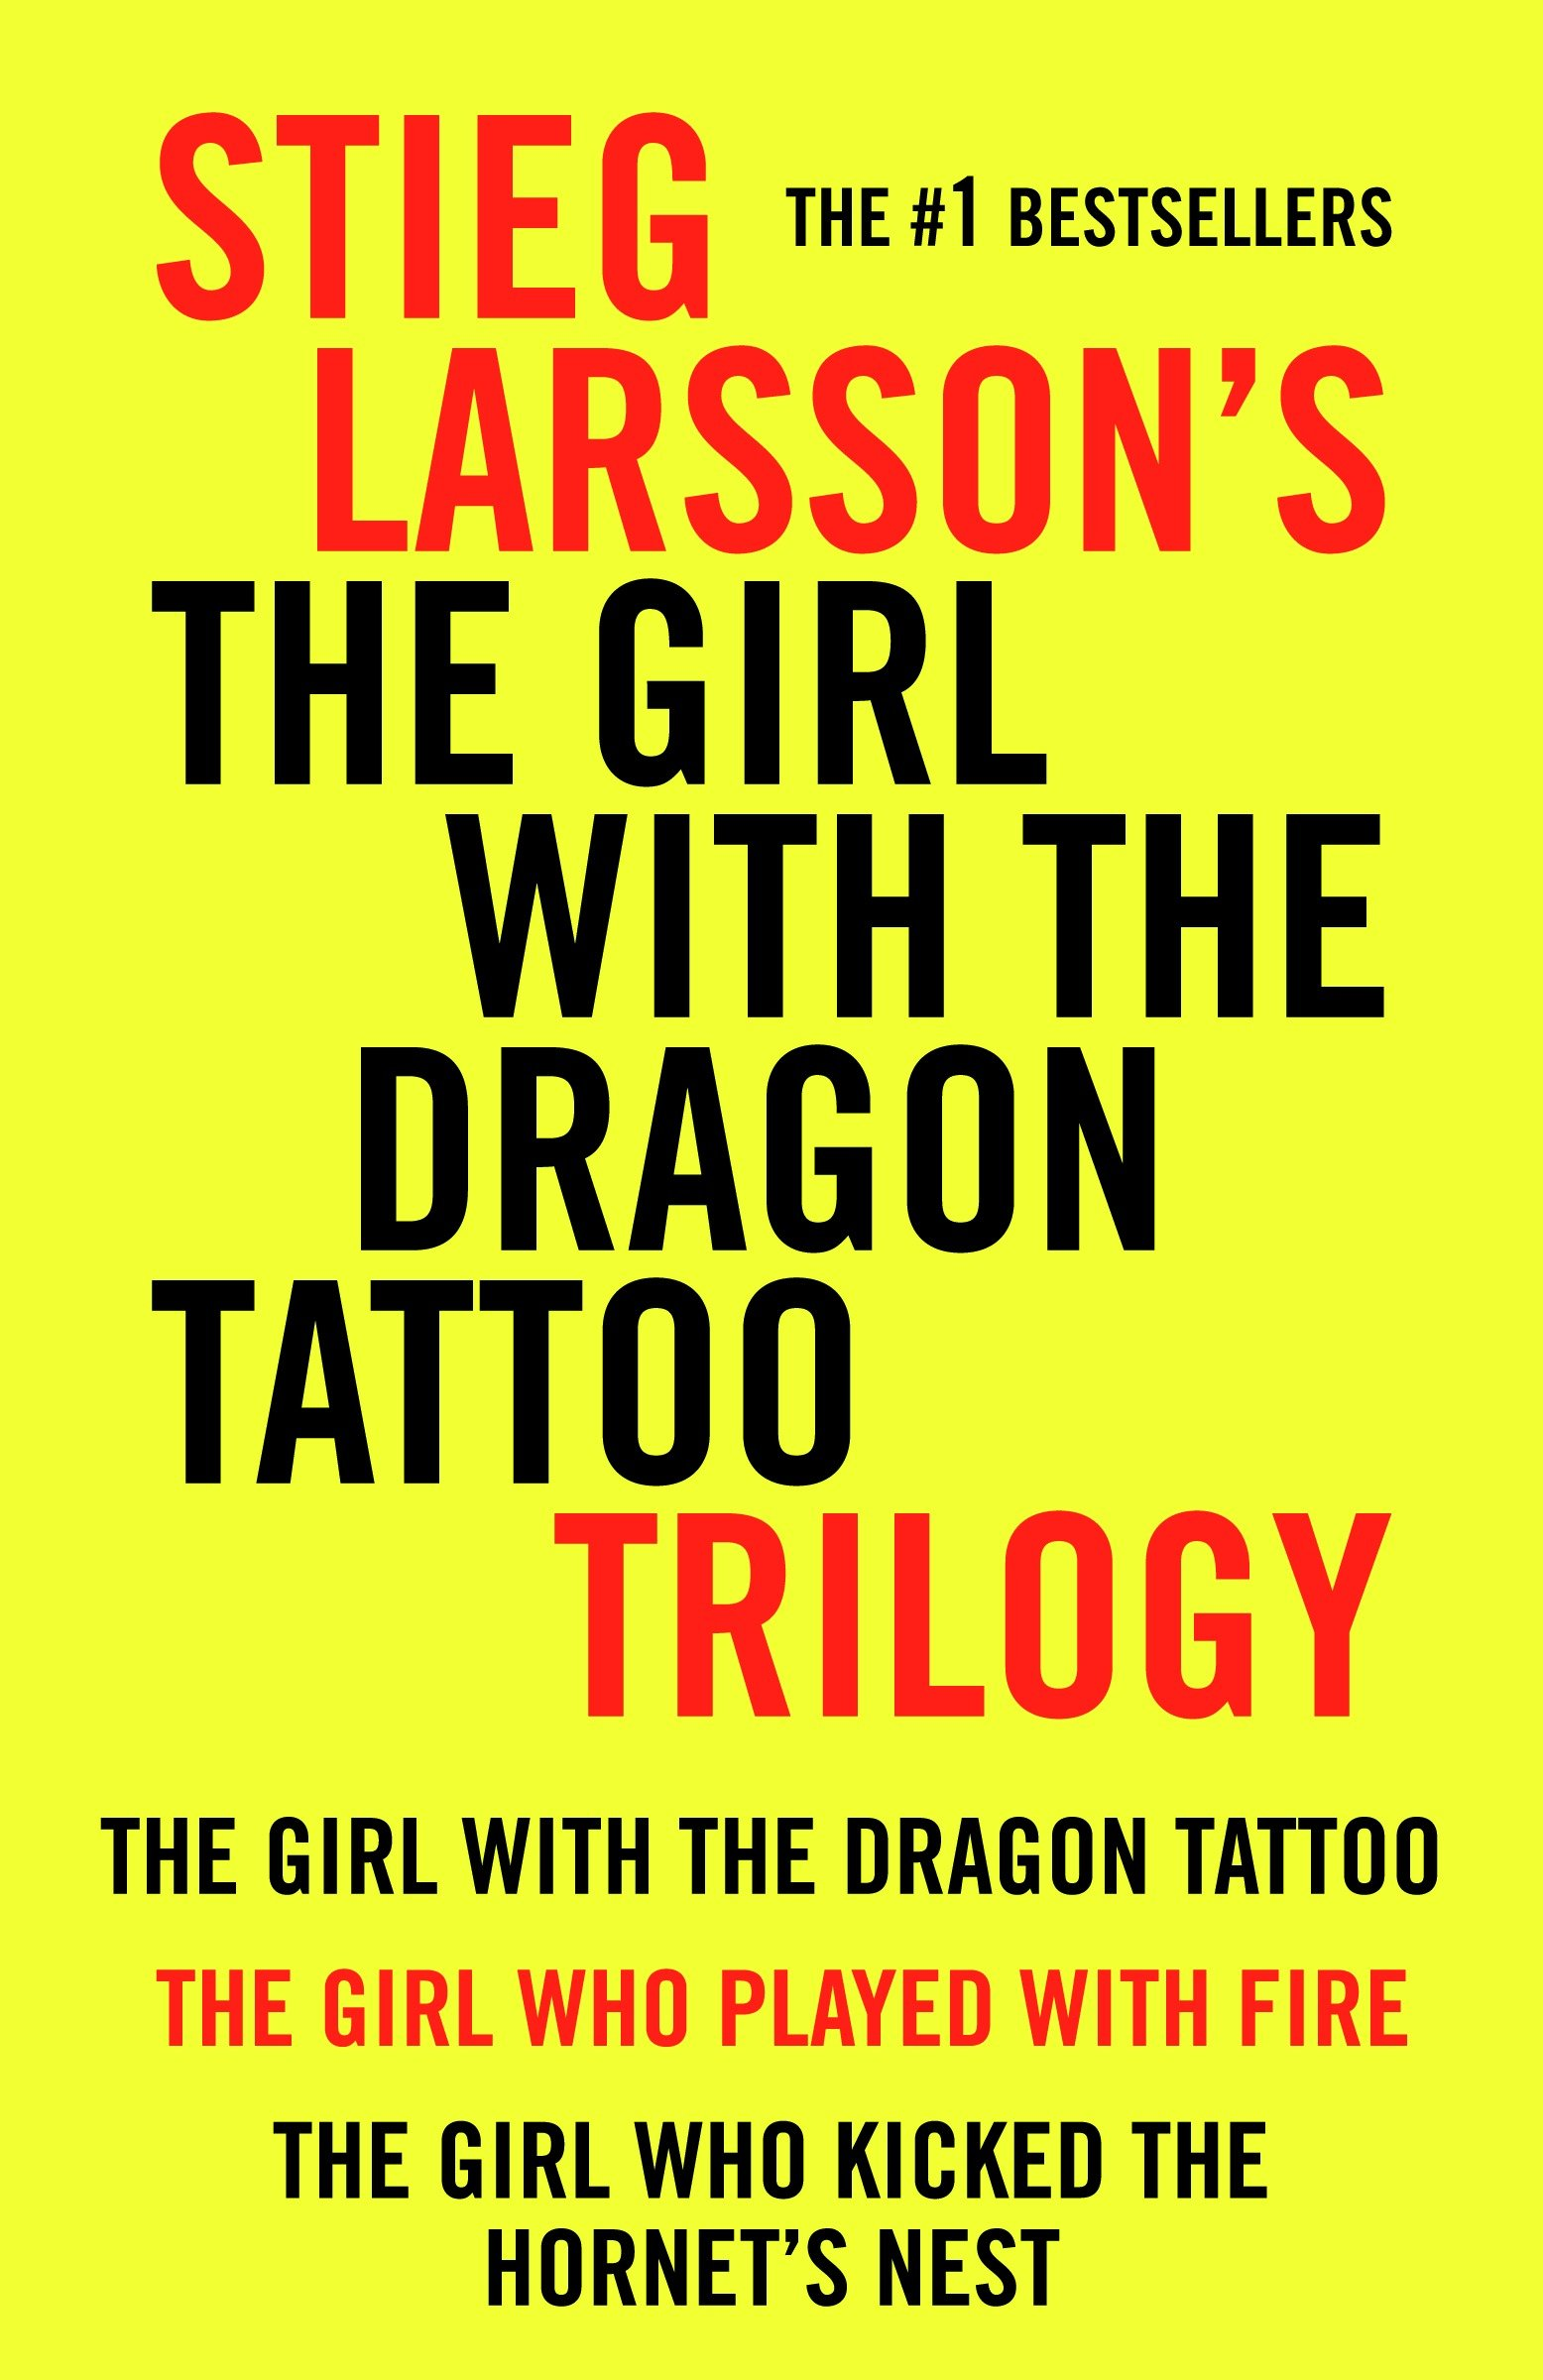 Girl with the Dragon Tattoo Trilogy Bundle The Girl with the Dragon Tattoo, The Girl Who Played with Fire, The Girl Who Kicked the Hornet's Nest